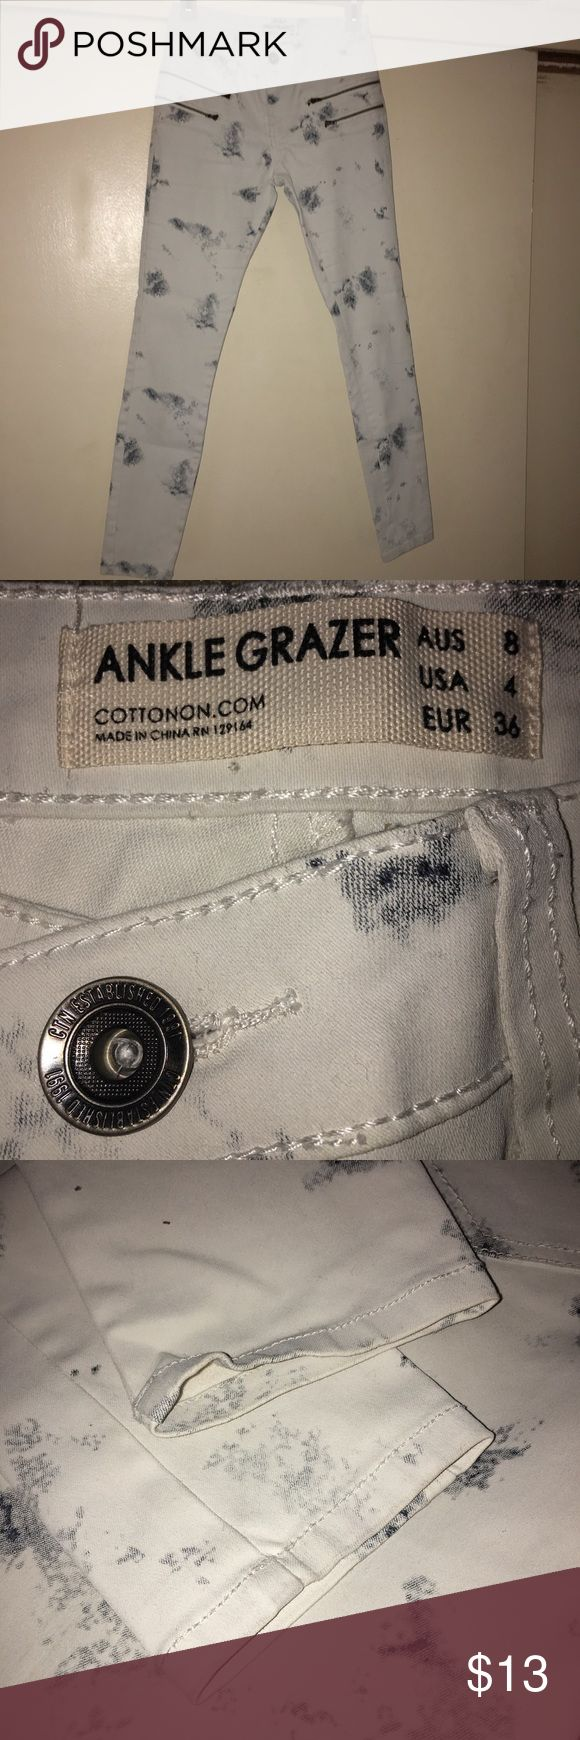 Cotton On Ankle Grazer Skinny Jeans Size 4 Cotton On Ankle